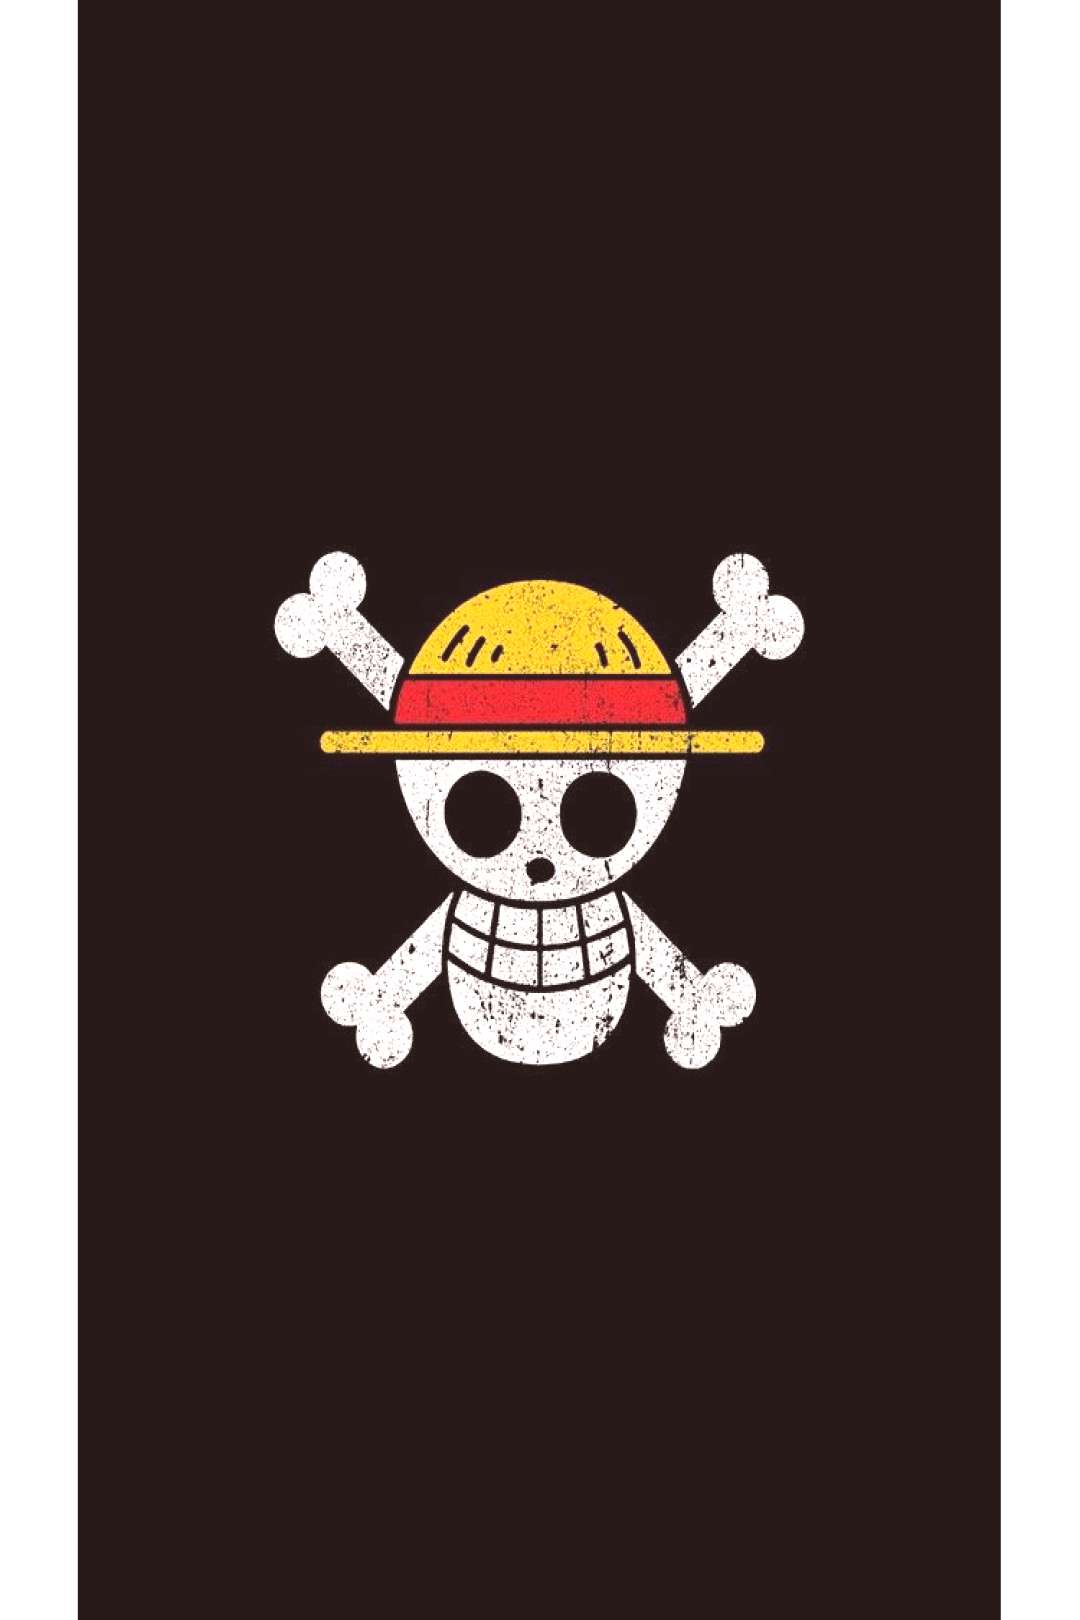 quotStraw Hat Pirates Jolly Rogerquot Case amp Skin for Samsung Galaxy by huckblade Re ,